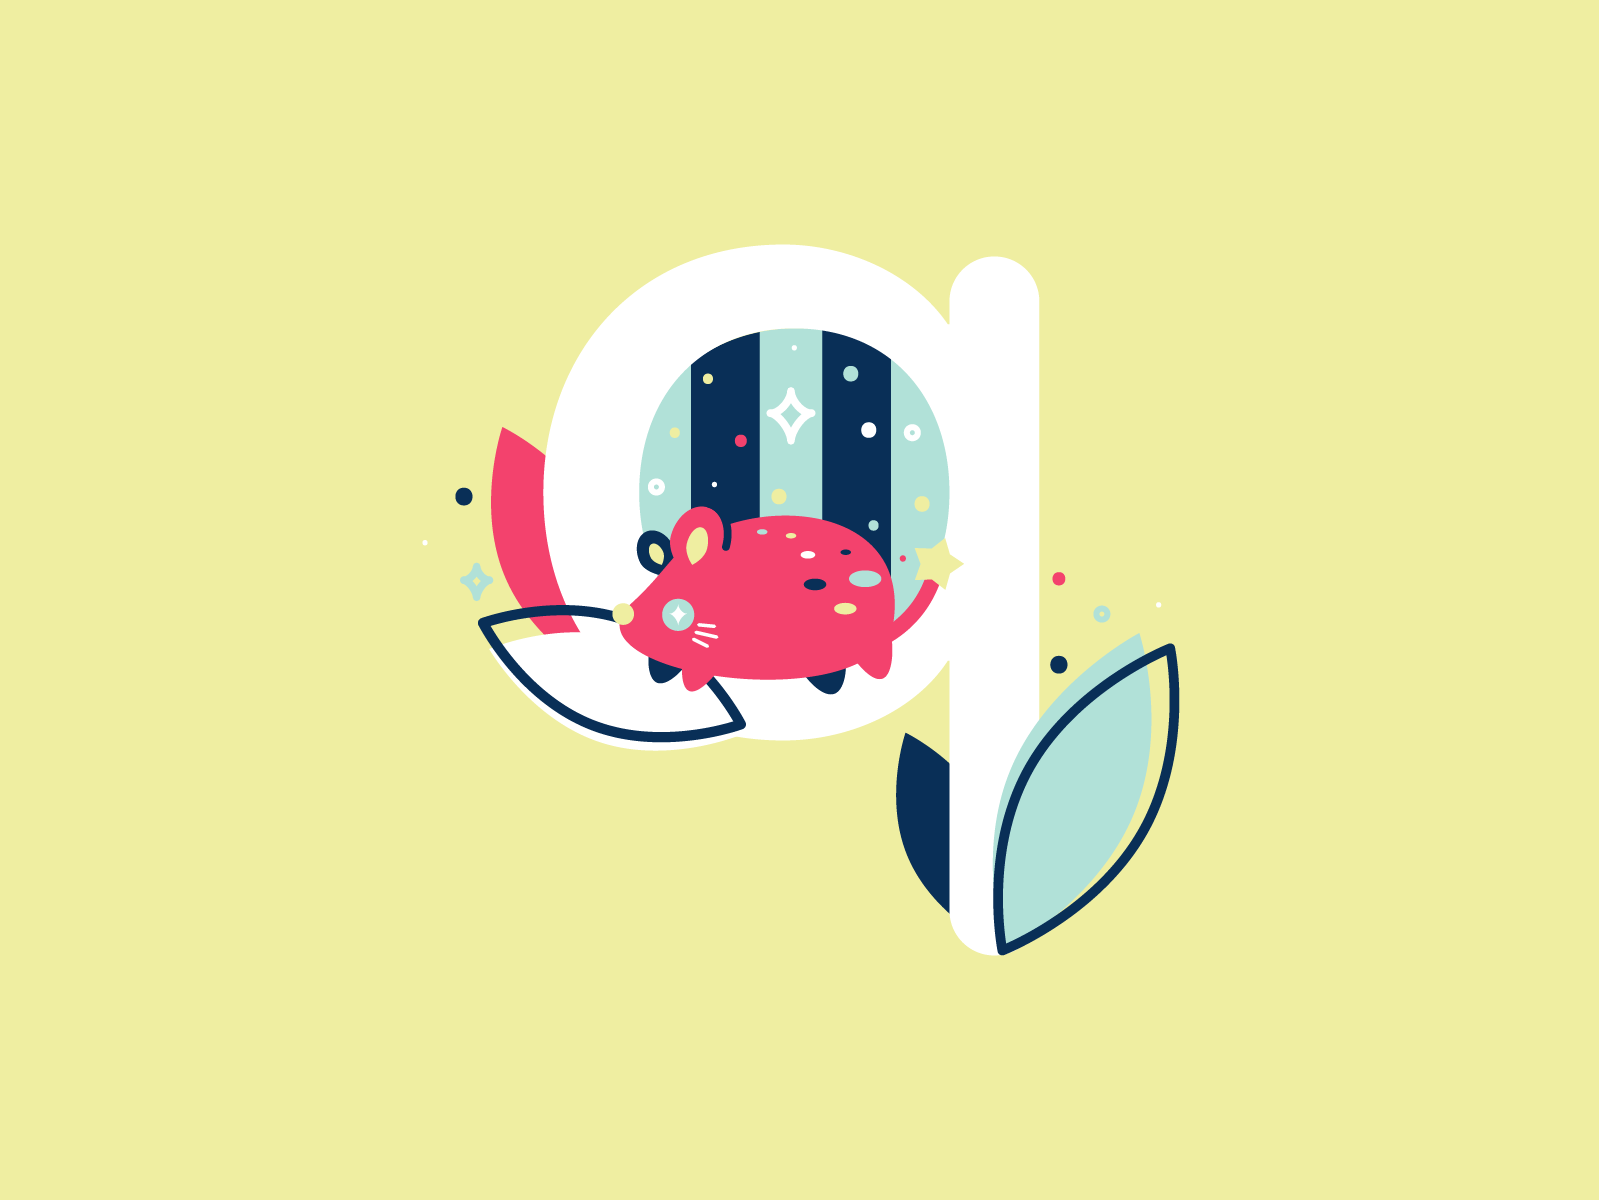 Q quoll 36daysoftype 26daysoftype cute flat illustration vector